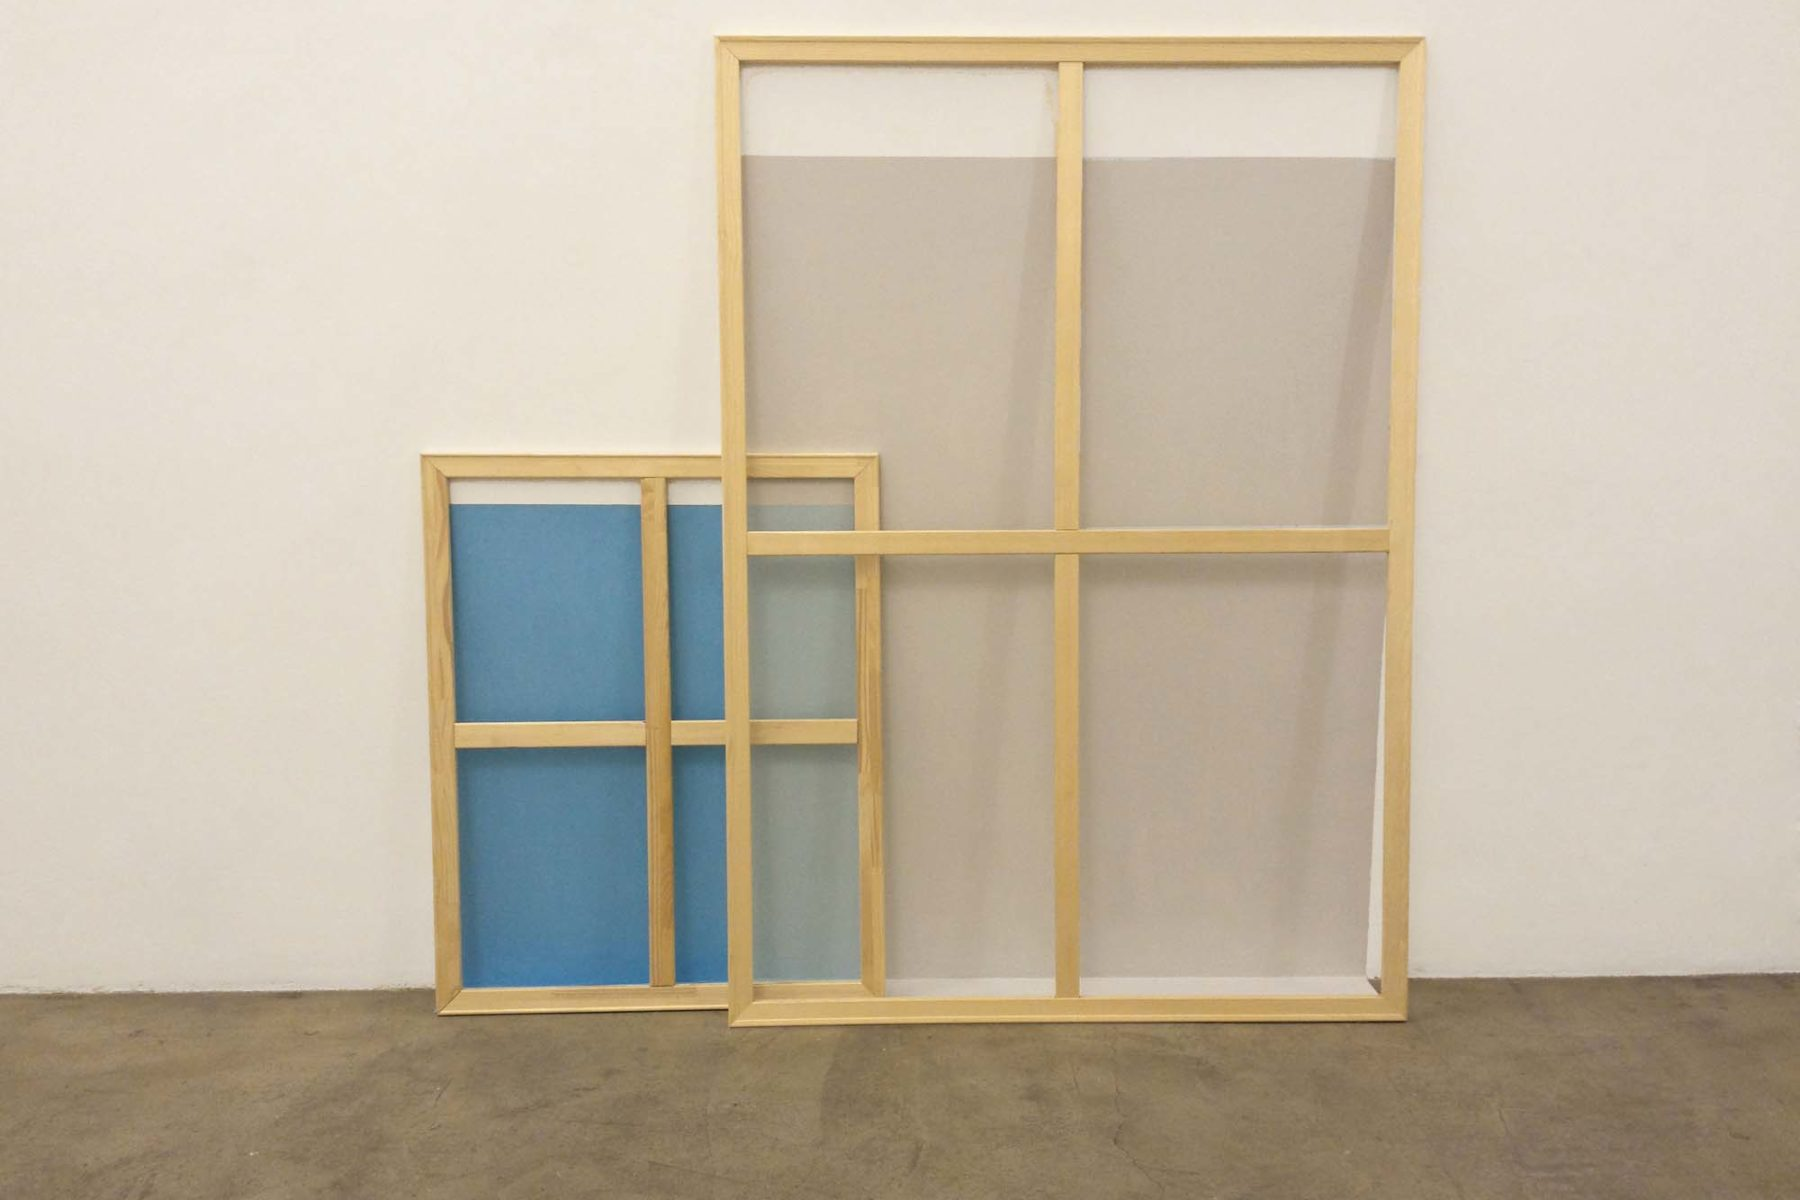 Johanna Binder, Hintermholz3, 2014, acrylic on wall and floor, wood stretchers, 173 x 170 x 21 cm